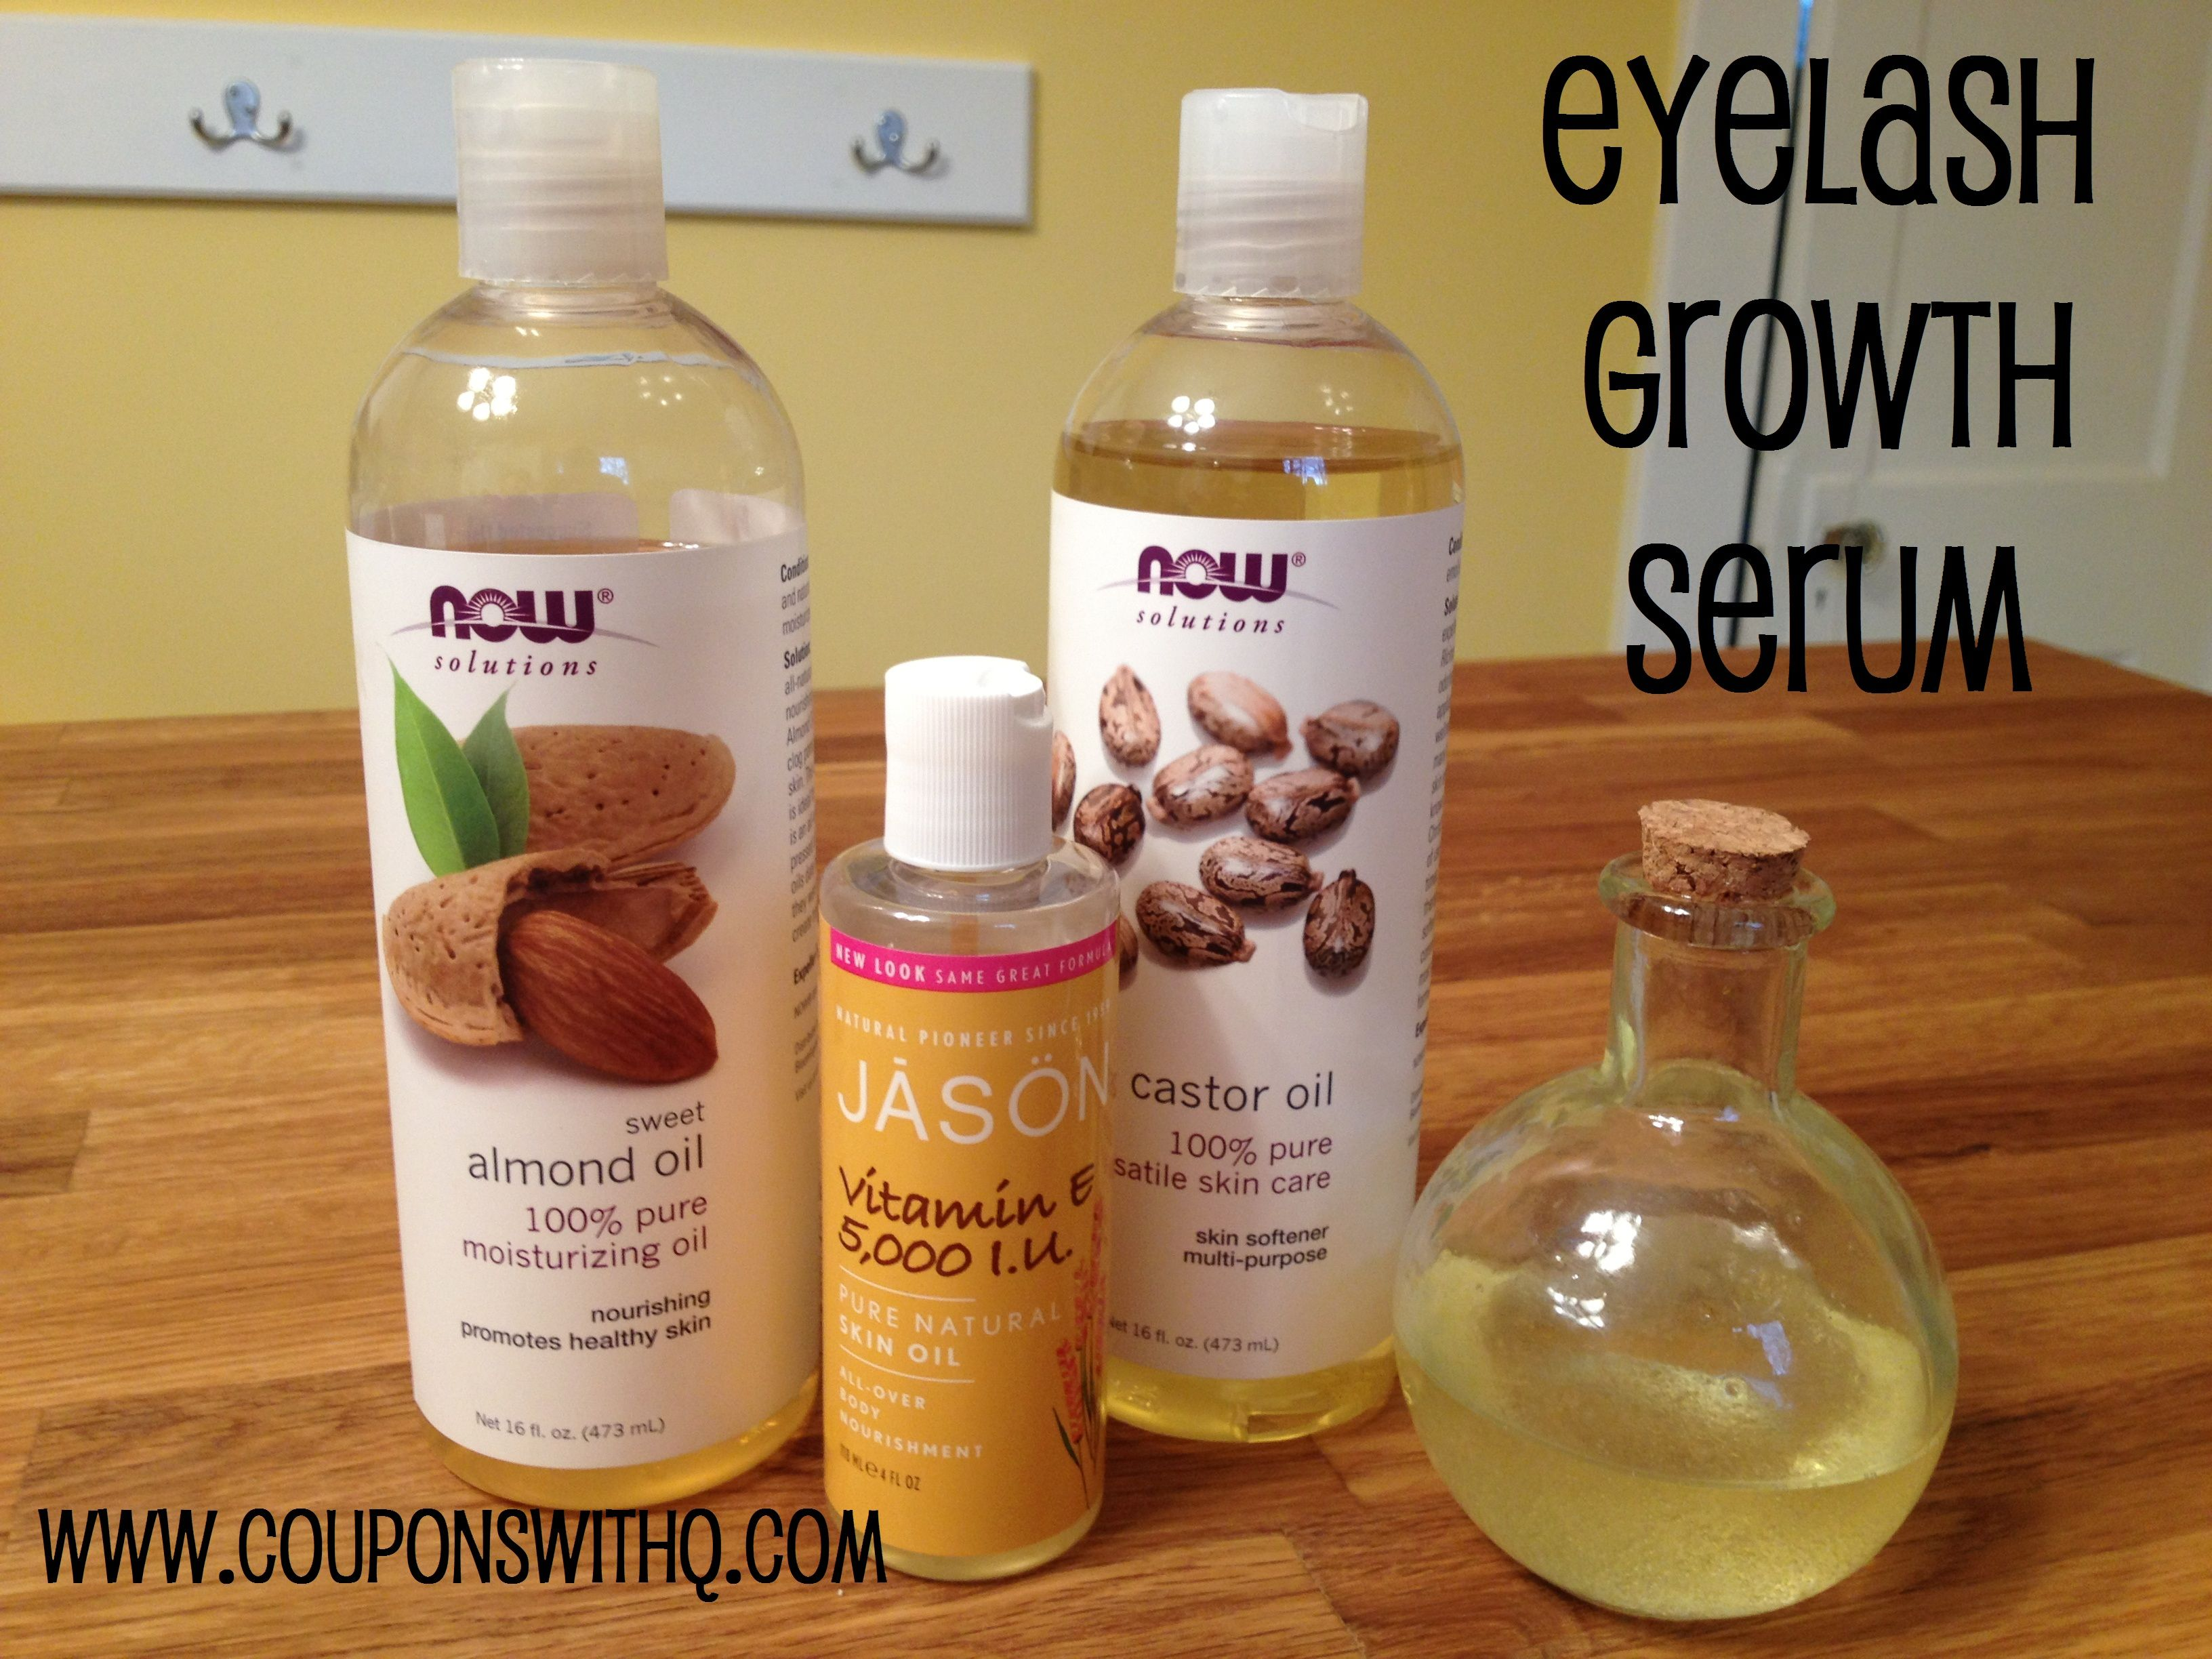 Eyelash Growth Serum I Have Been Using It For A Month And